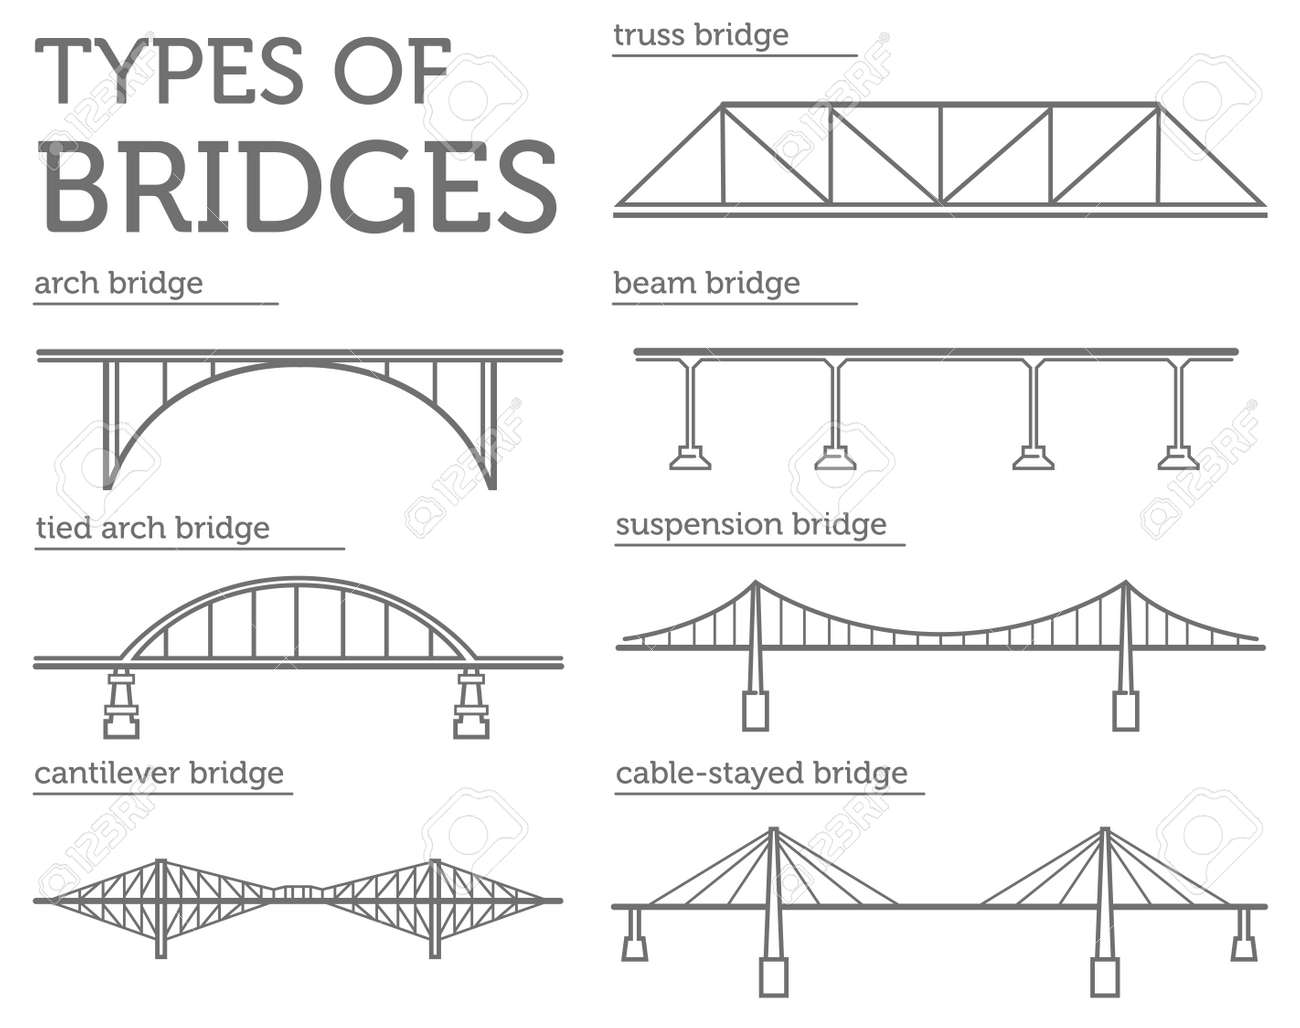 Types of bridges. Linear style icon set. Possible use in infographic design. Vector illustration - 82524471